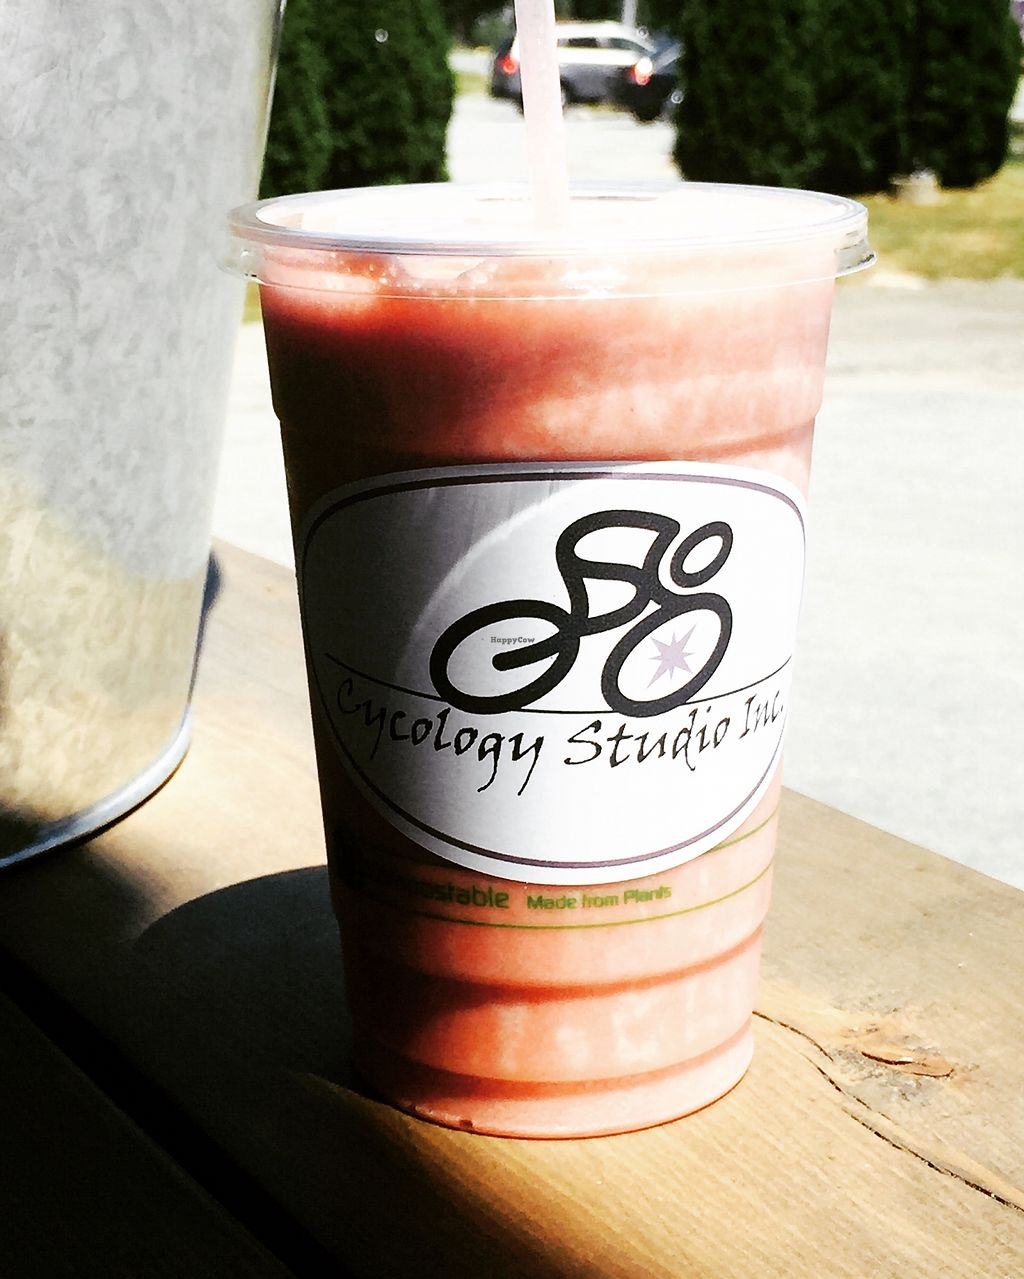 """Photo of Cycology Cafe  by <a href=""""/members/profile/Cycology"""">Cycology</a> <br/>Plant-based shakes and smoothies <br/> July 13, 2017  - <a href='/contact/abuse/image/96155/280008'>Report</a>"""